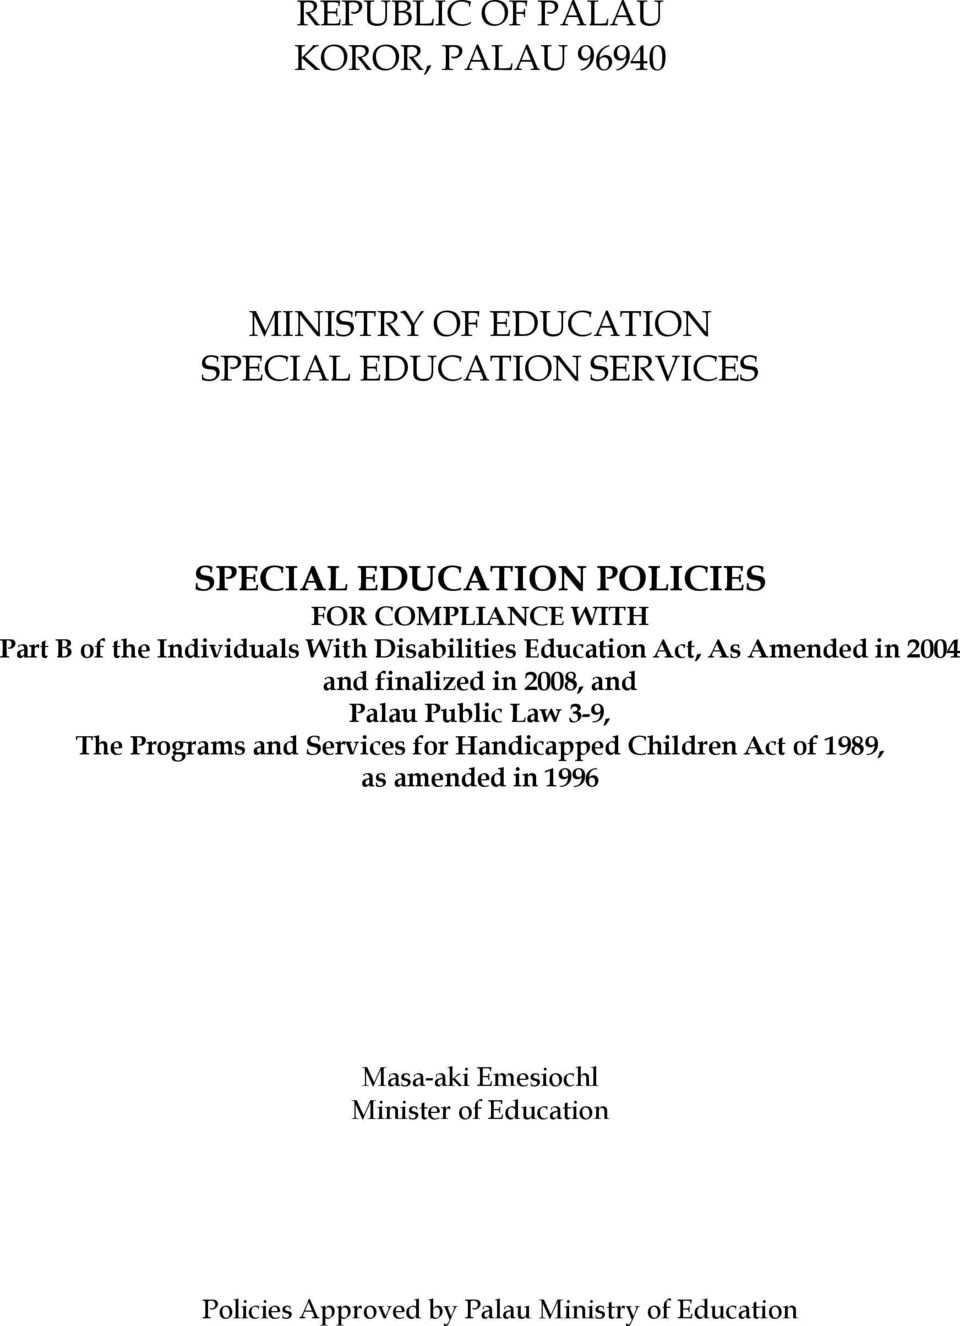 and finalized in 2008, and Palau Public Law 3-9, The Programs and Services for Handicapped Children Act of